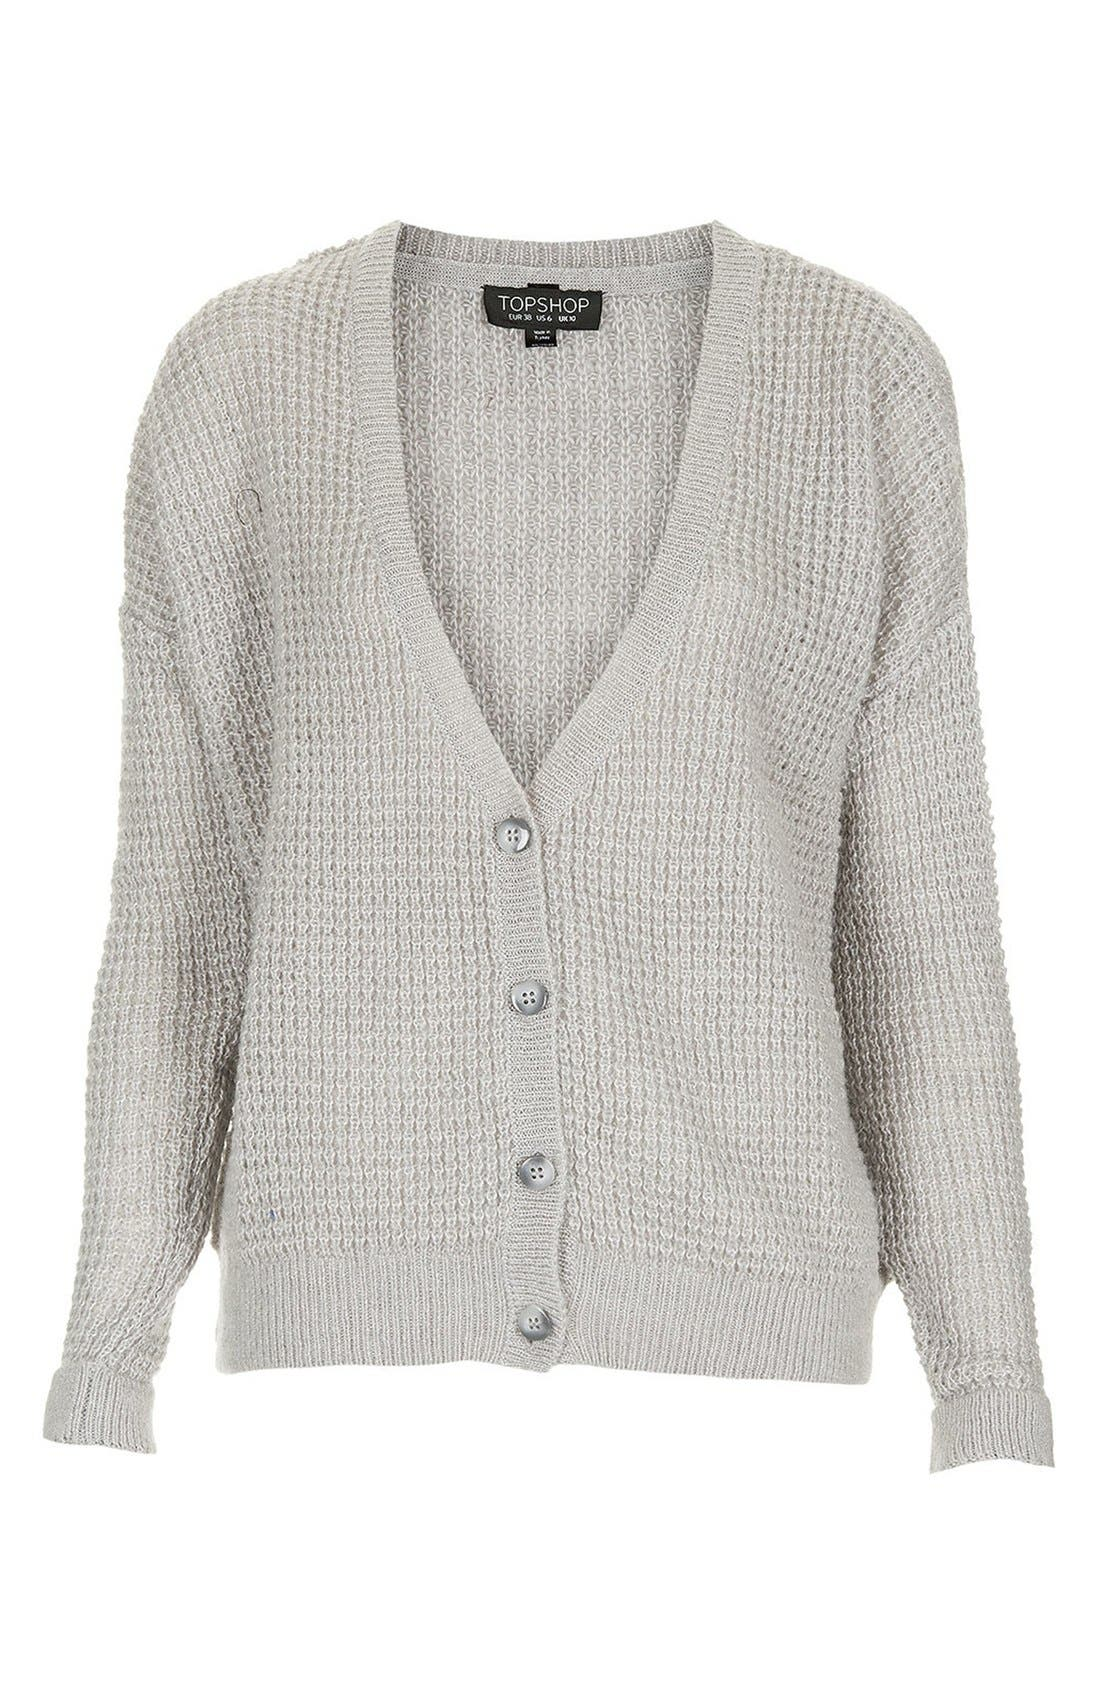 Alternate Image 3  - Topshop 'Lulu' Textured Stitch Cardigan